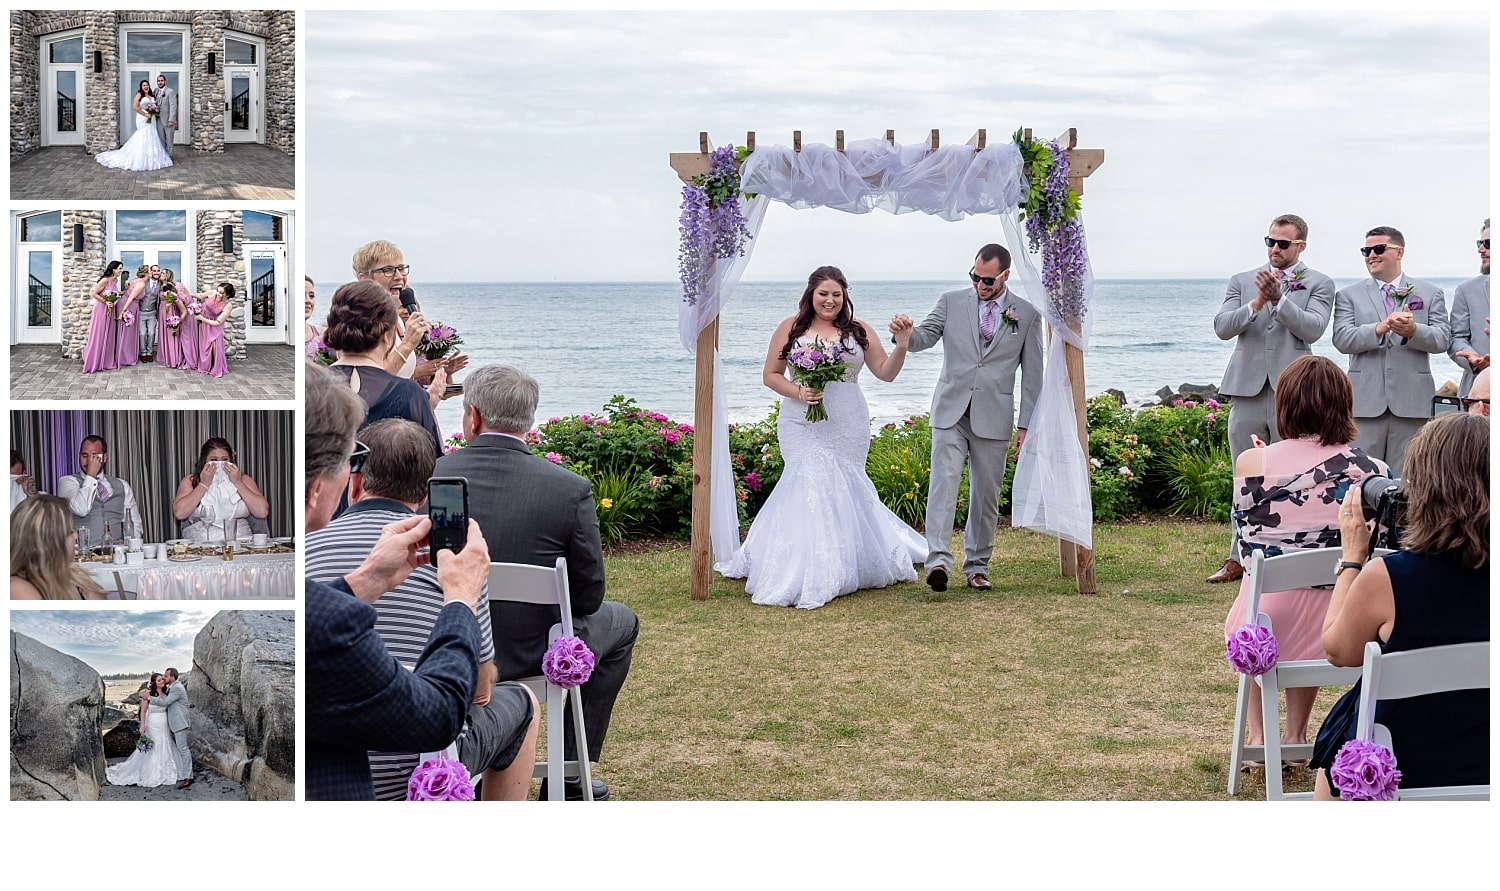 A Nova Scotia wedding photographer with the bride and groom at White Point Beach Resort.